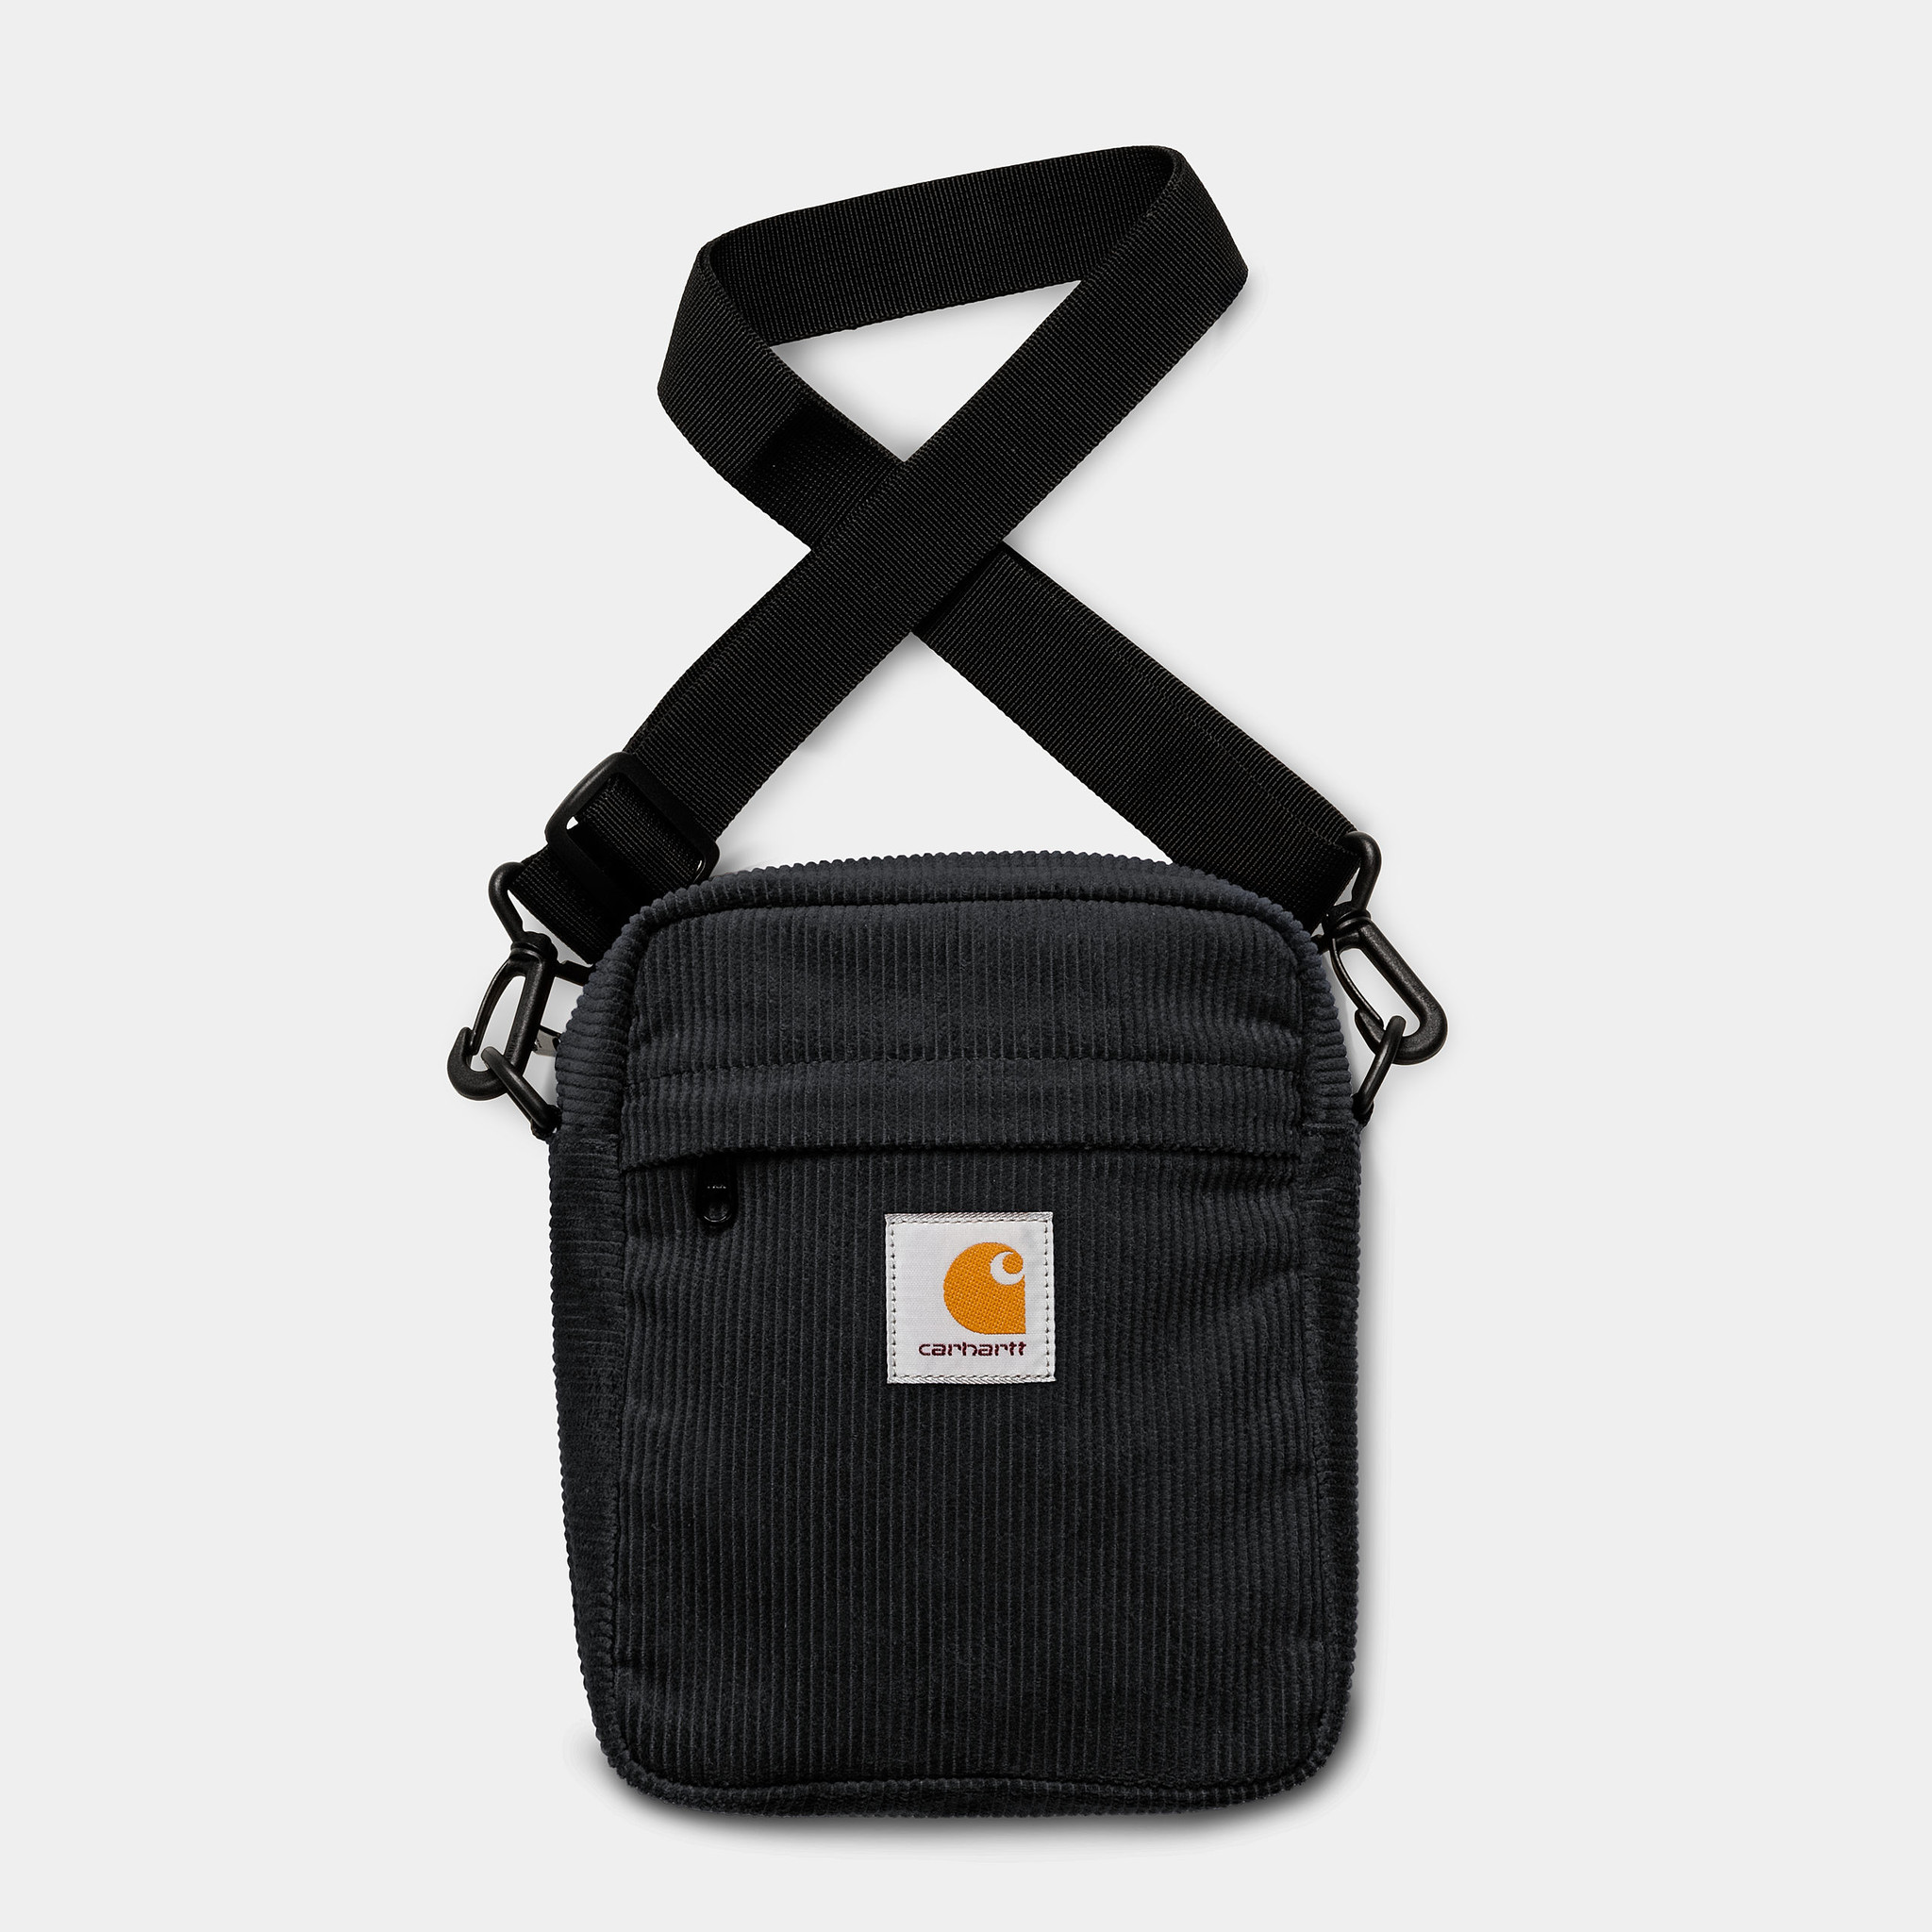 Carhartt Carhartt Cord Bag Small